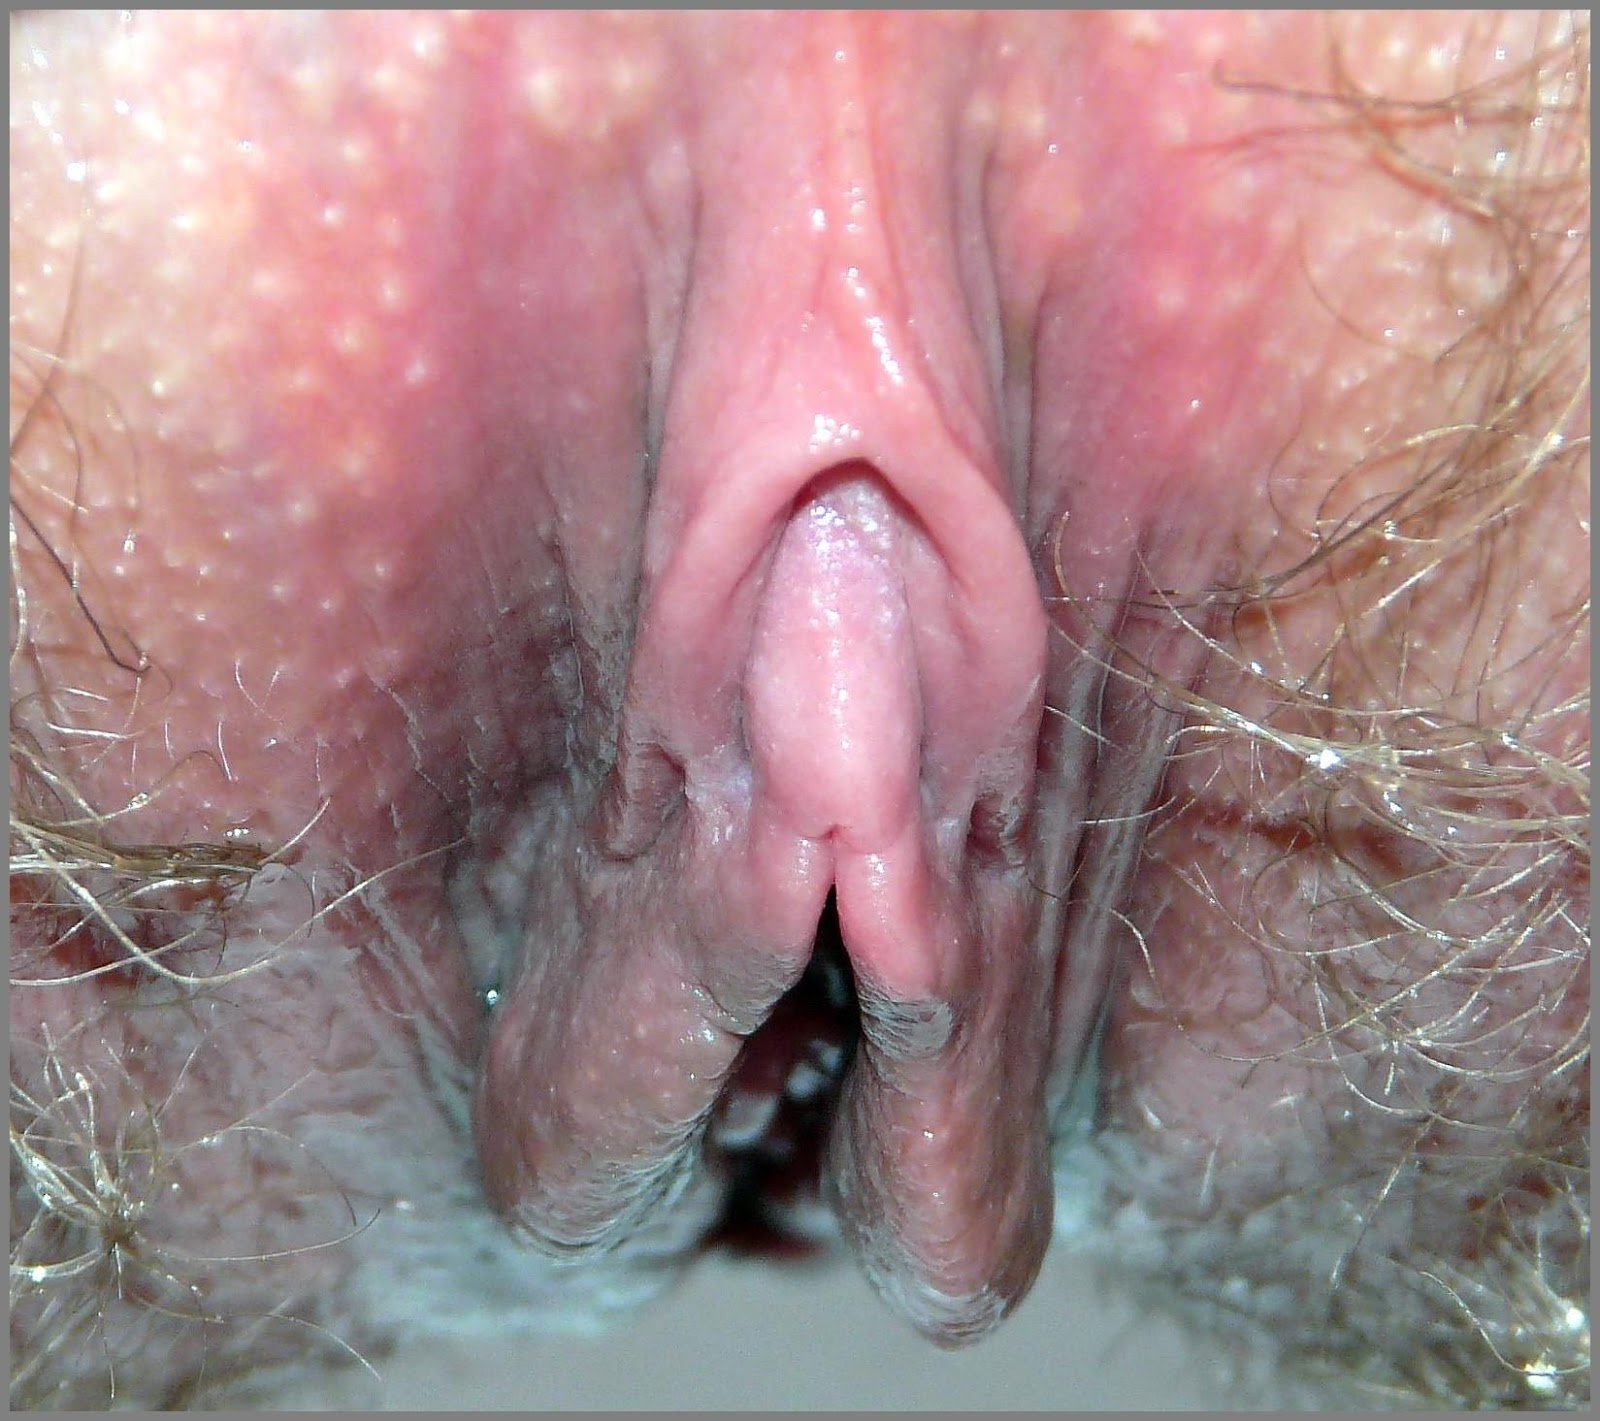 Clitoris normal vagina